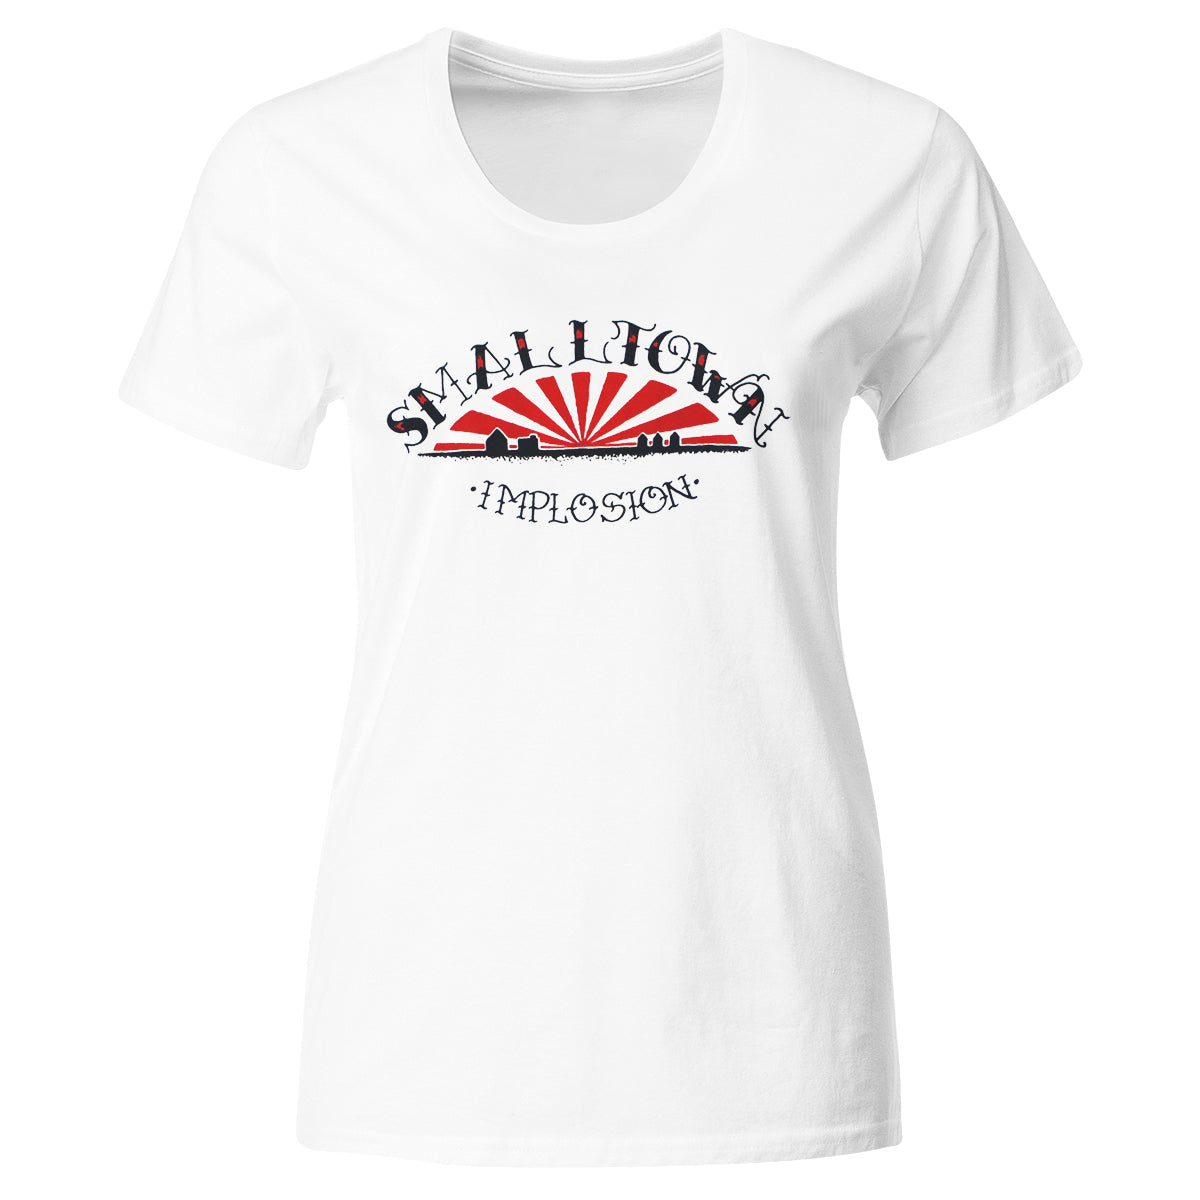 Smalltown - Implosion - T-Shirt - Fitted